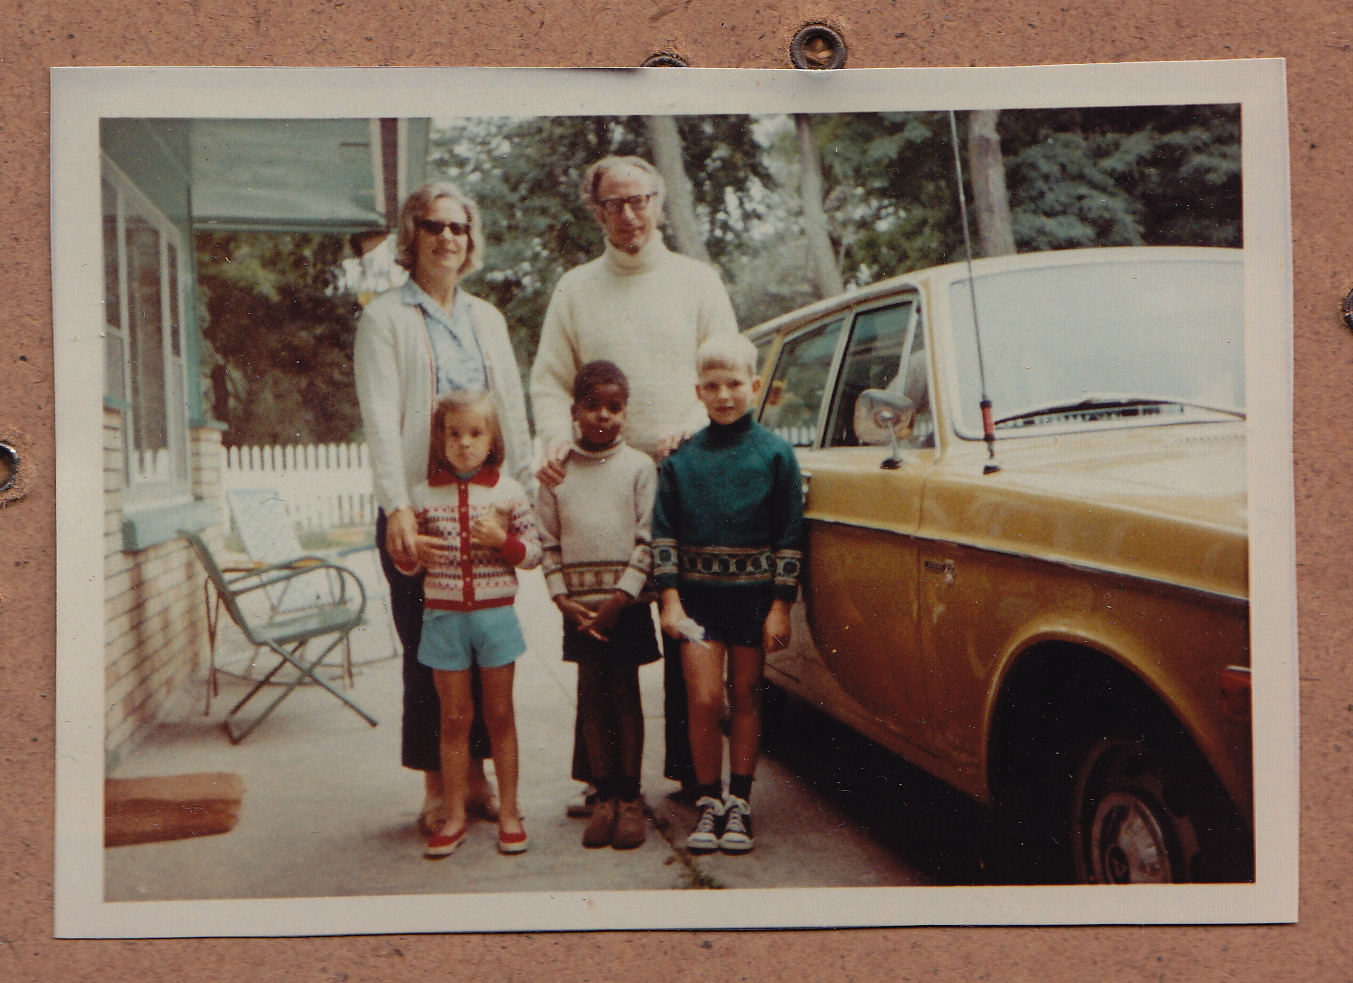 The Garwood-Jones Family (from left to right): Catherine, Alison, Richard, Trevor, Peter and the orange Volvo that took us up to Southampton every summer.